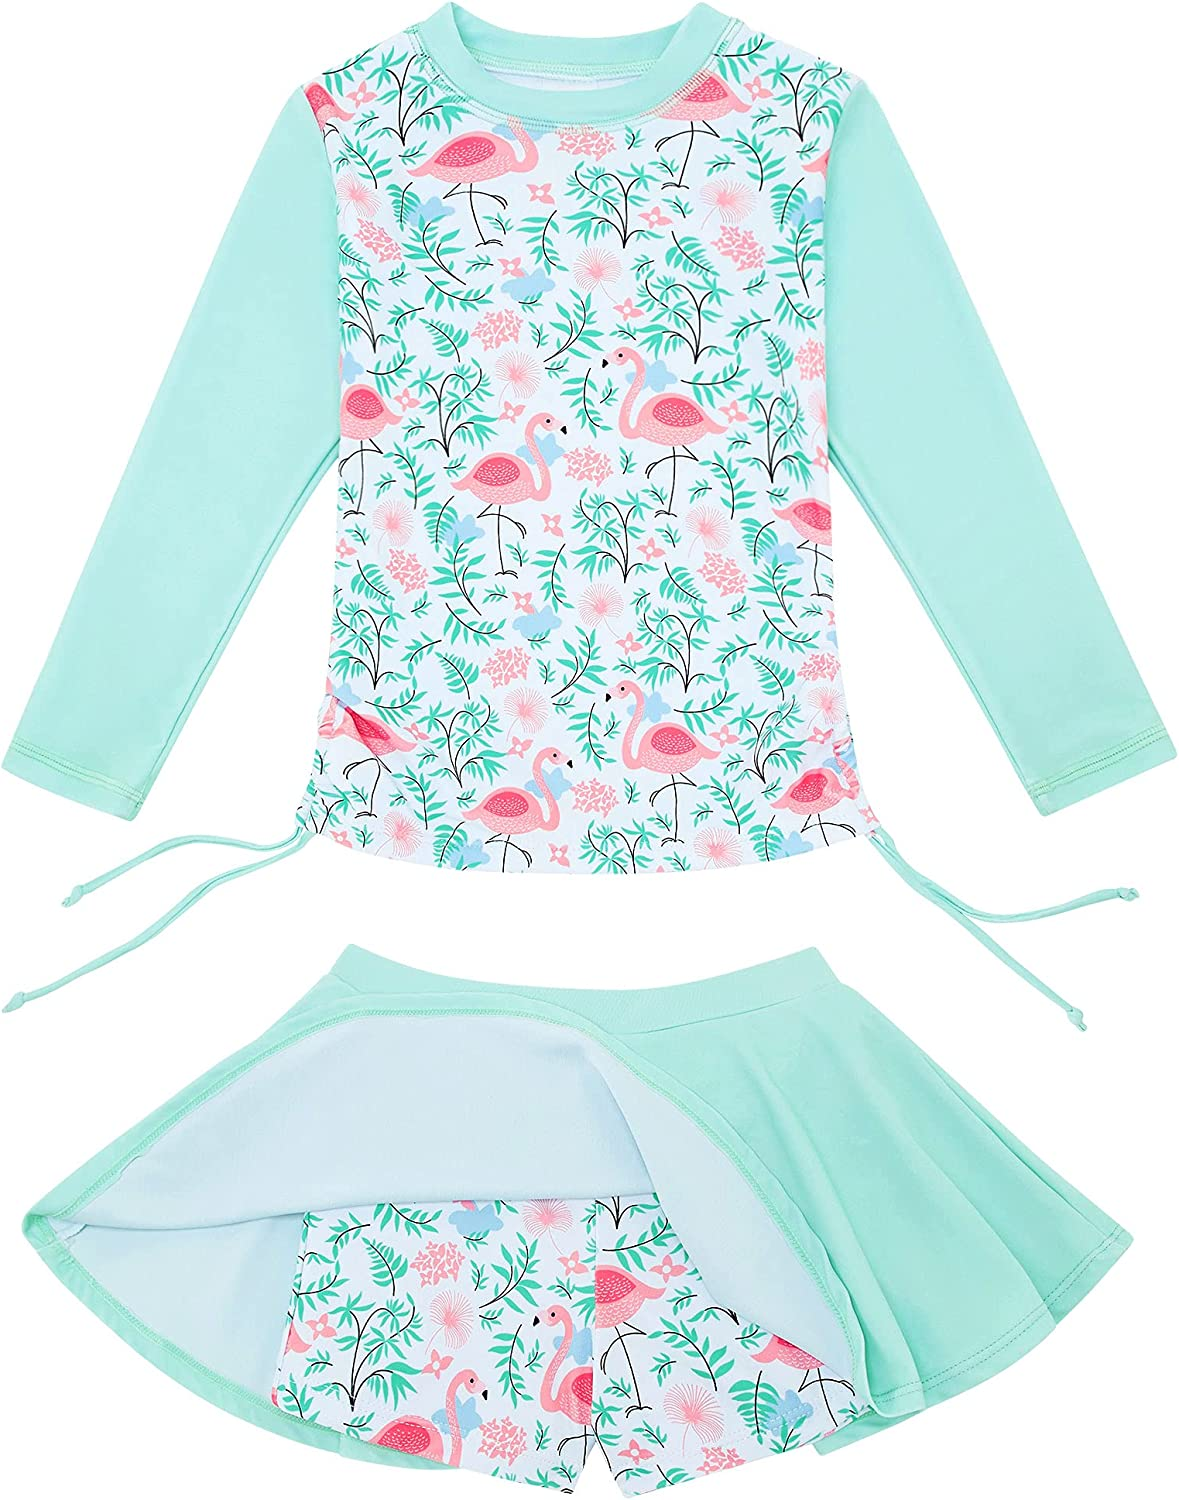 swimsobo Girls Rash Guard Swimsuits Special price for a limited time Suit Bathing Two Skir 1 year warranty Pieces